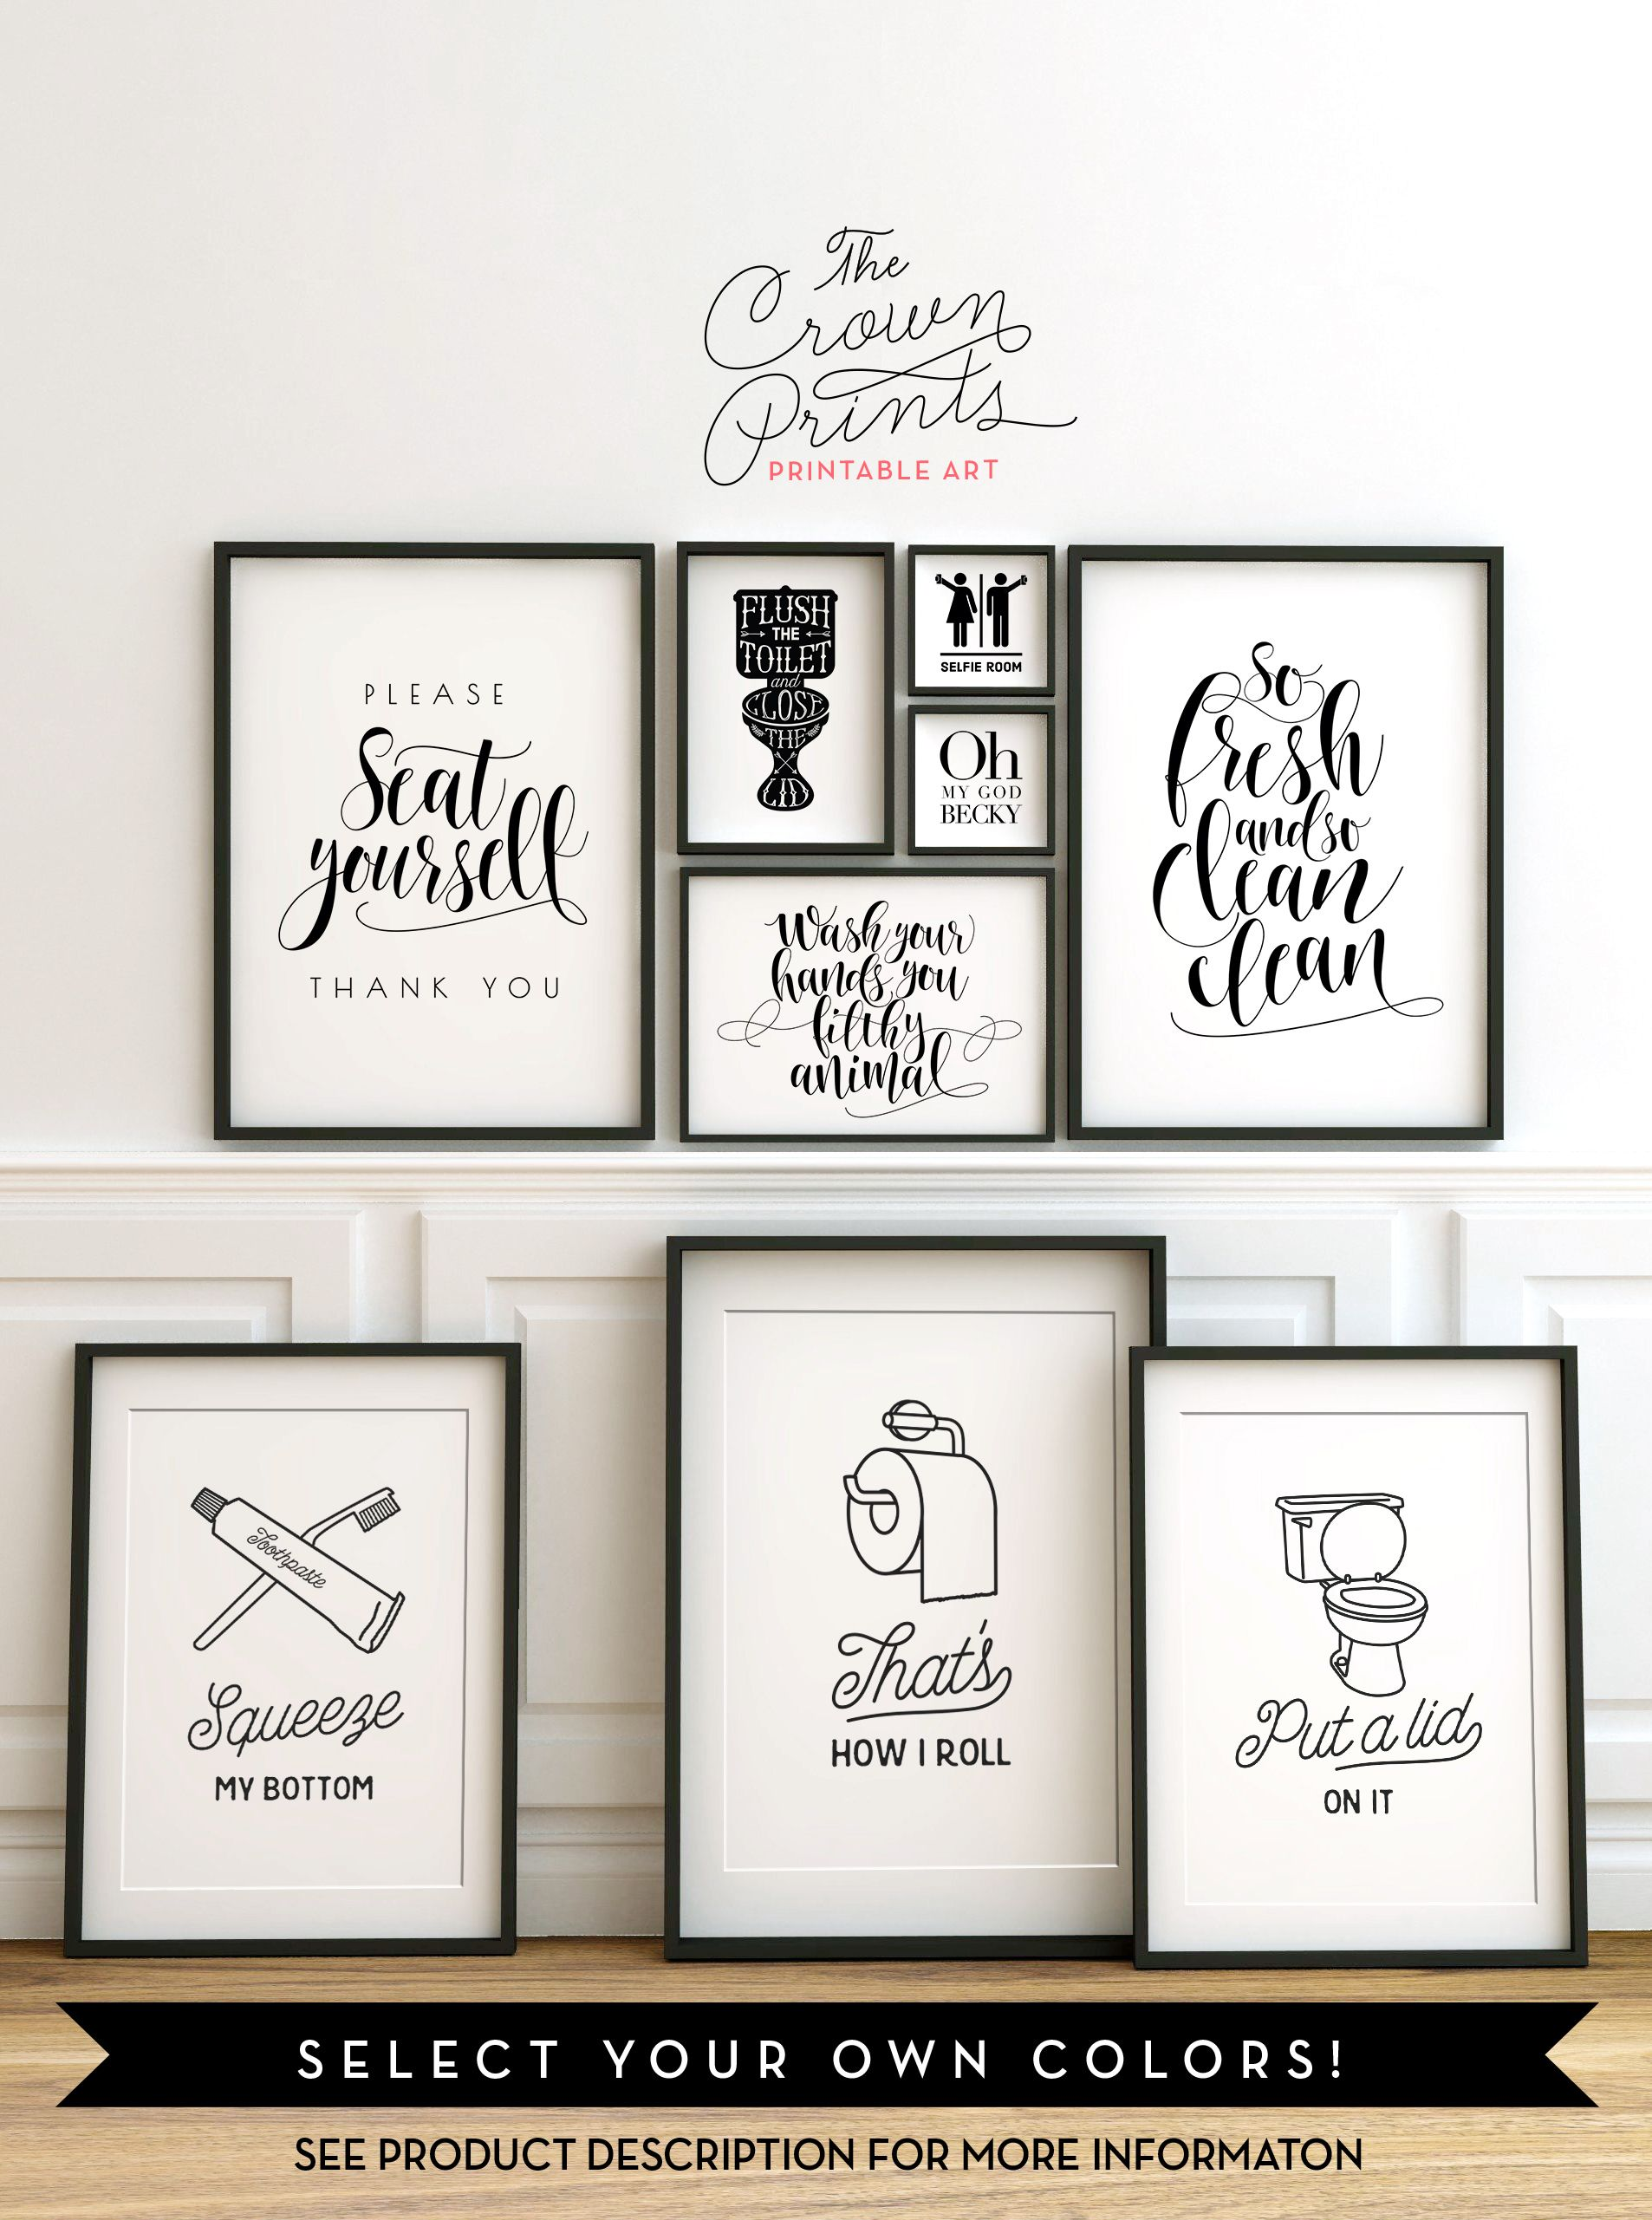 Bathroom wall art printables - Printable Bathroom Wall Art From The Crown Prints On Etsy Lots Of Funny Quotes And